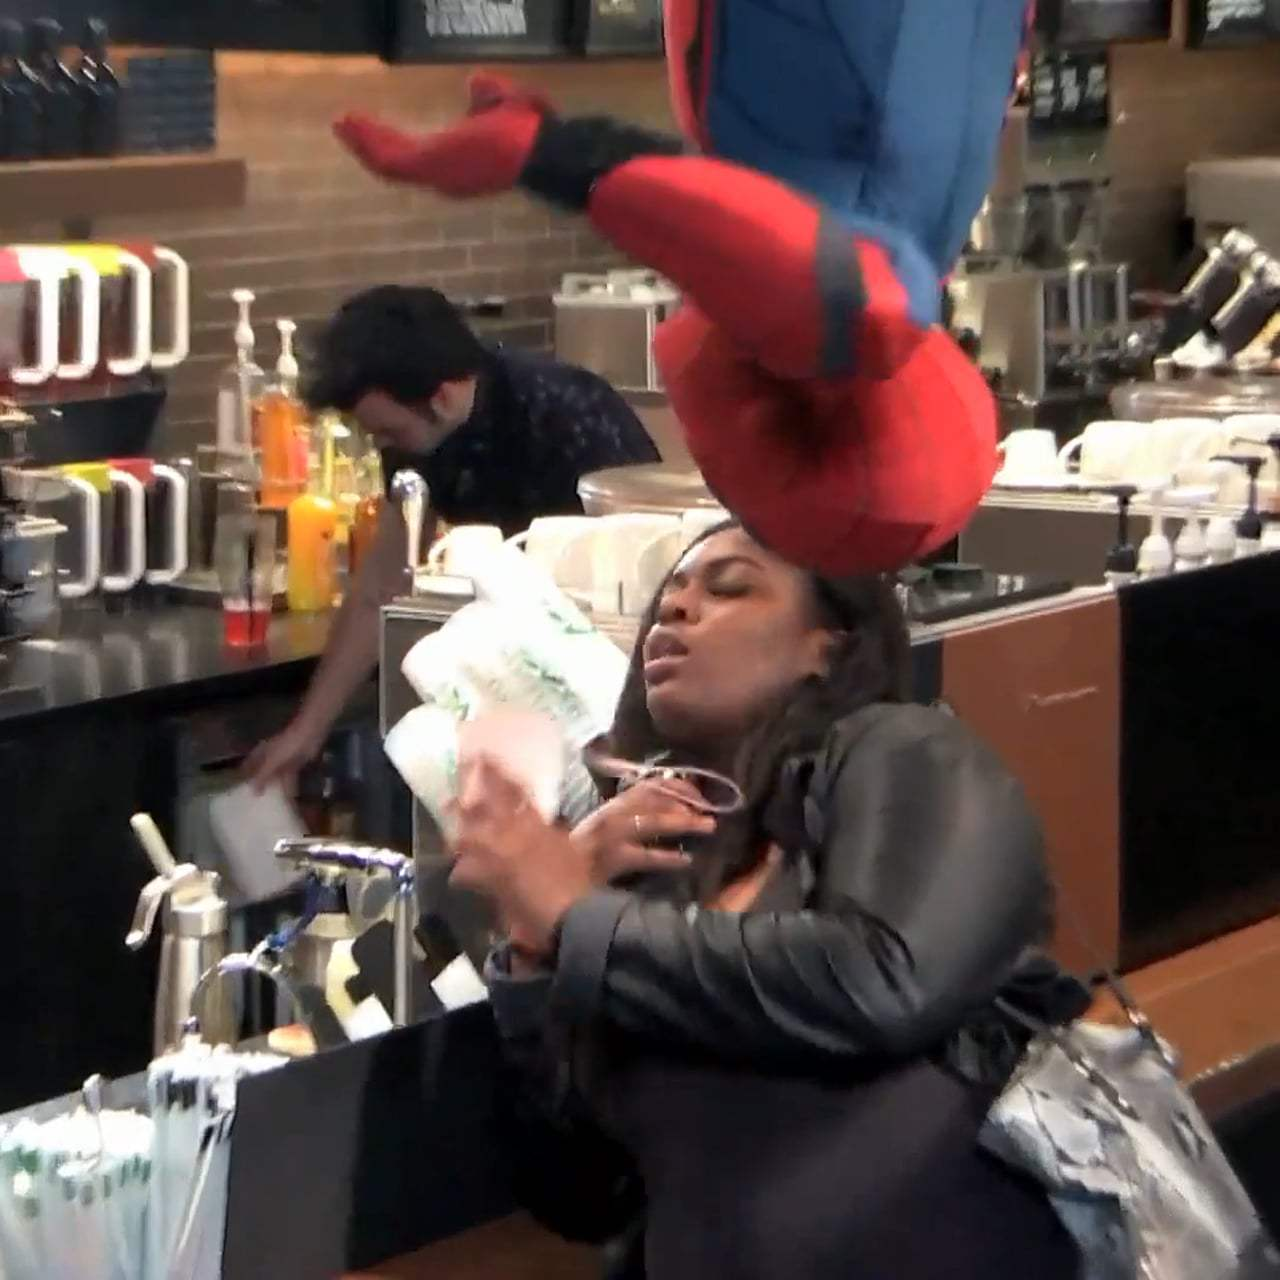 Spider-Man: Homecoming Viral - New York City Starbucks (2017) Screen Capture #3